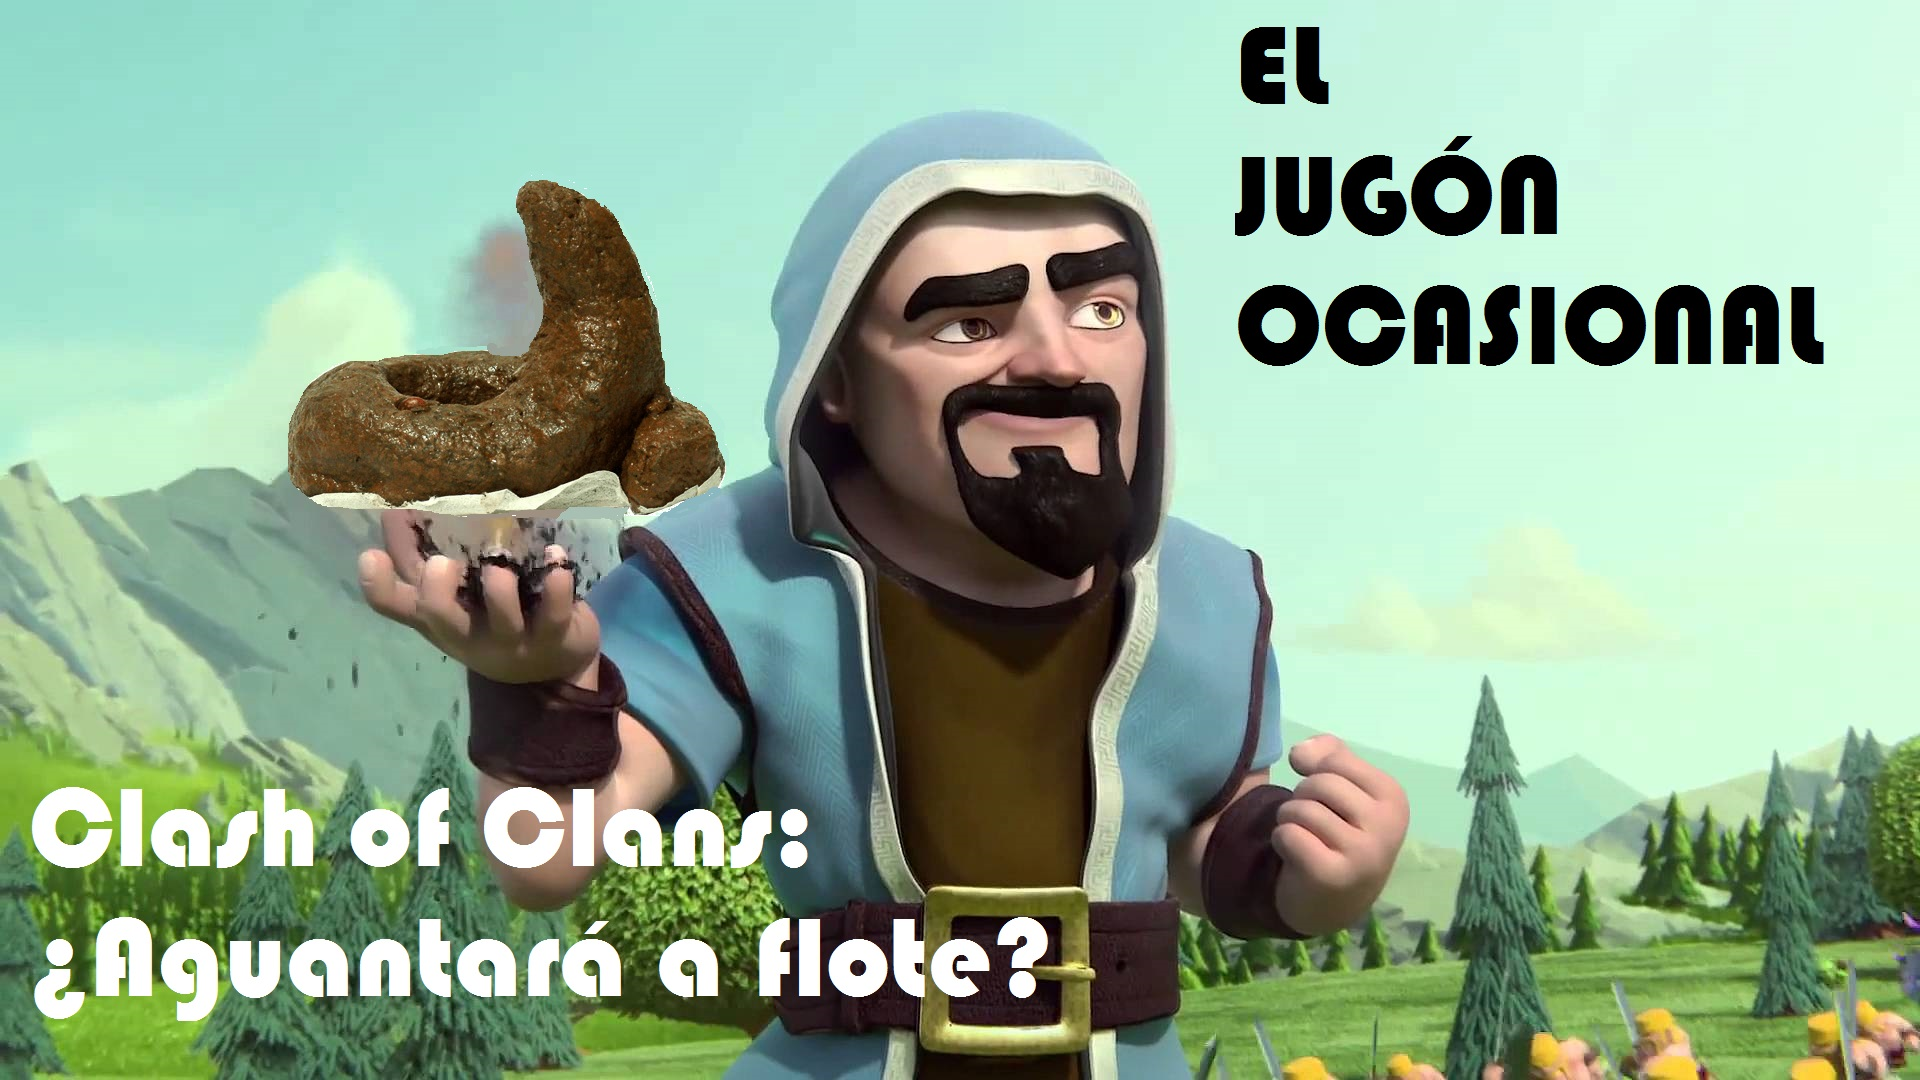 Clash of Clans: Aguantará a flote?